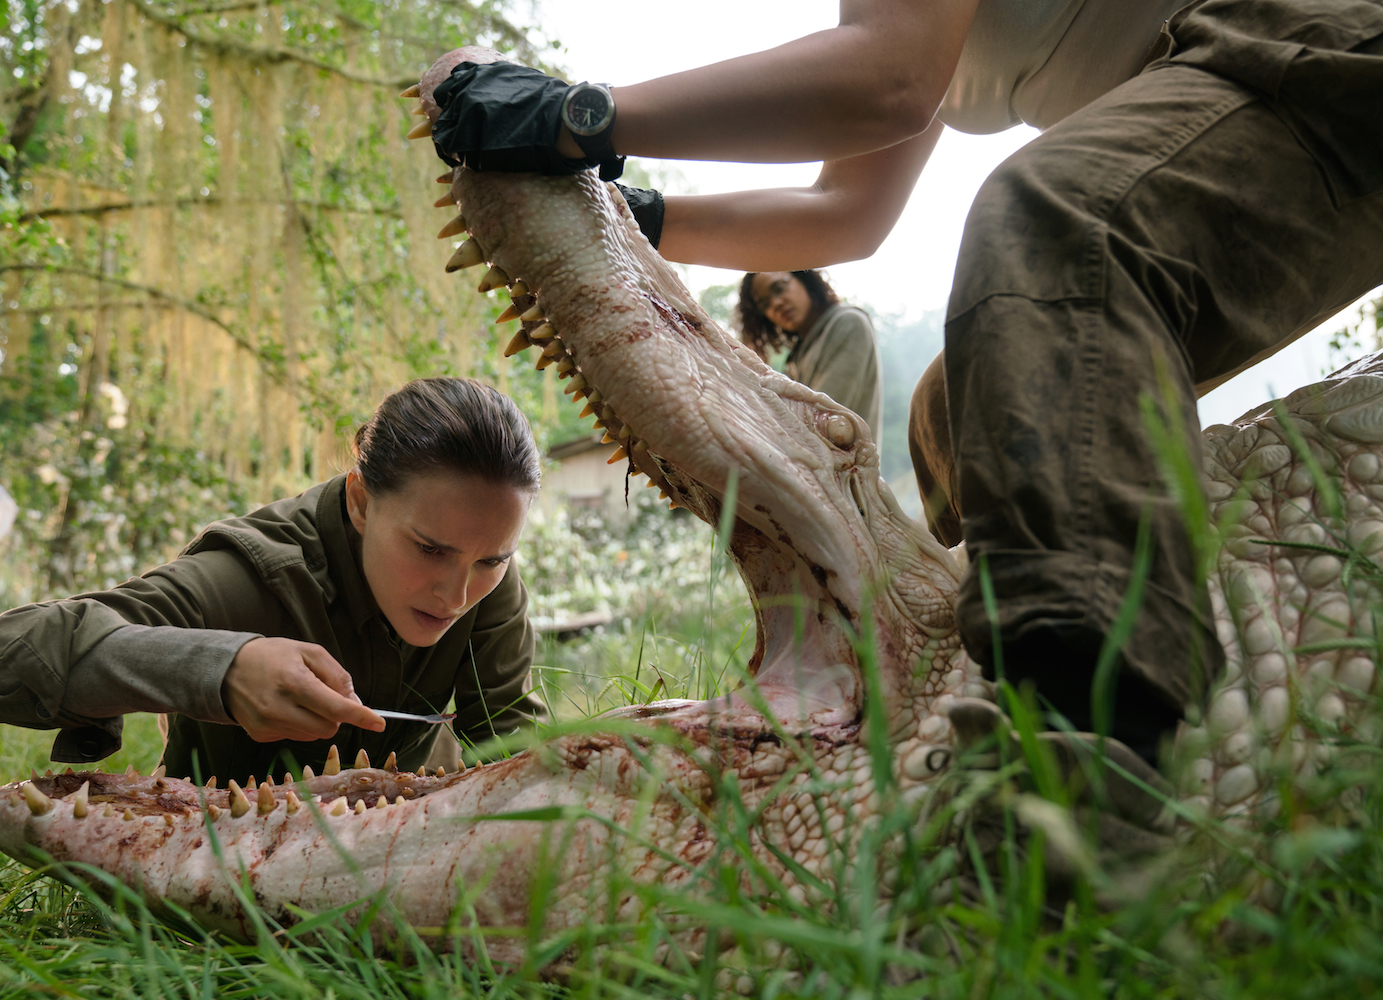 Gina Rodriguez & Tessa Thompson Are on a Mission to Rescue Oscar Isaac in Eerie 'Annihilation' Trailer